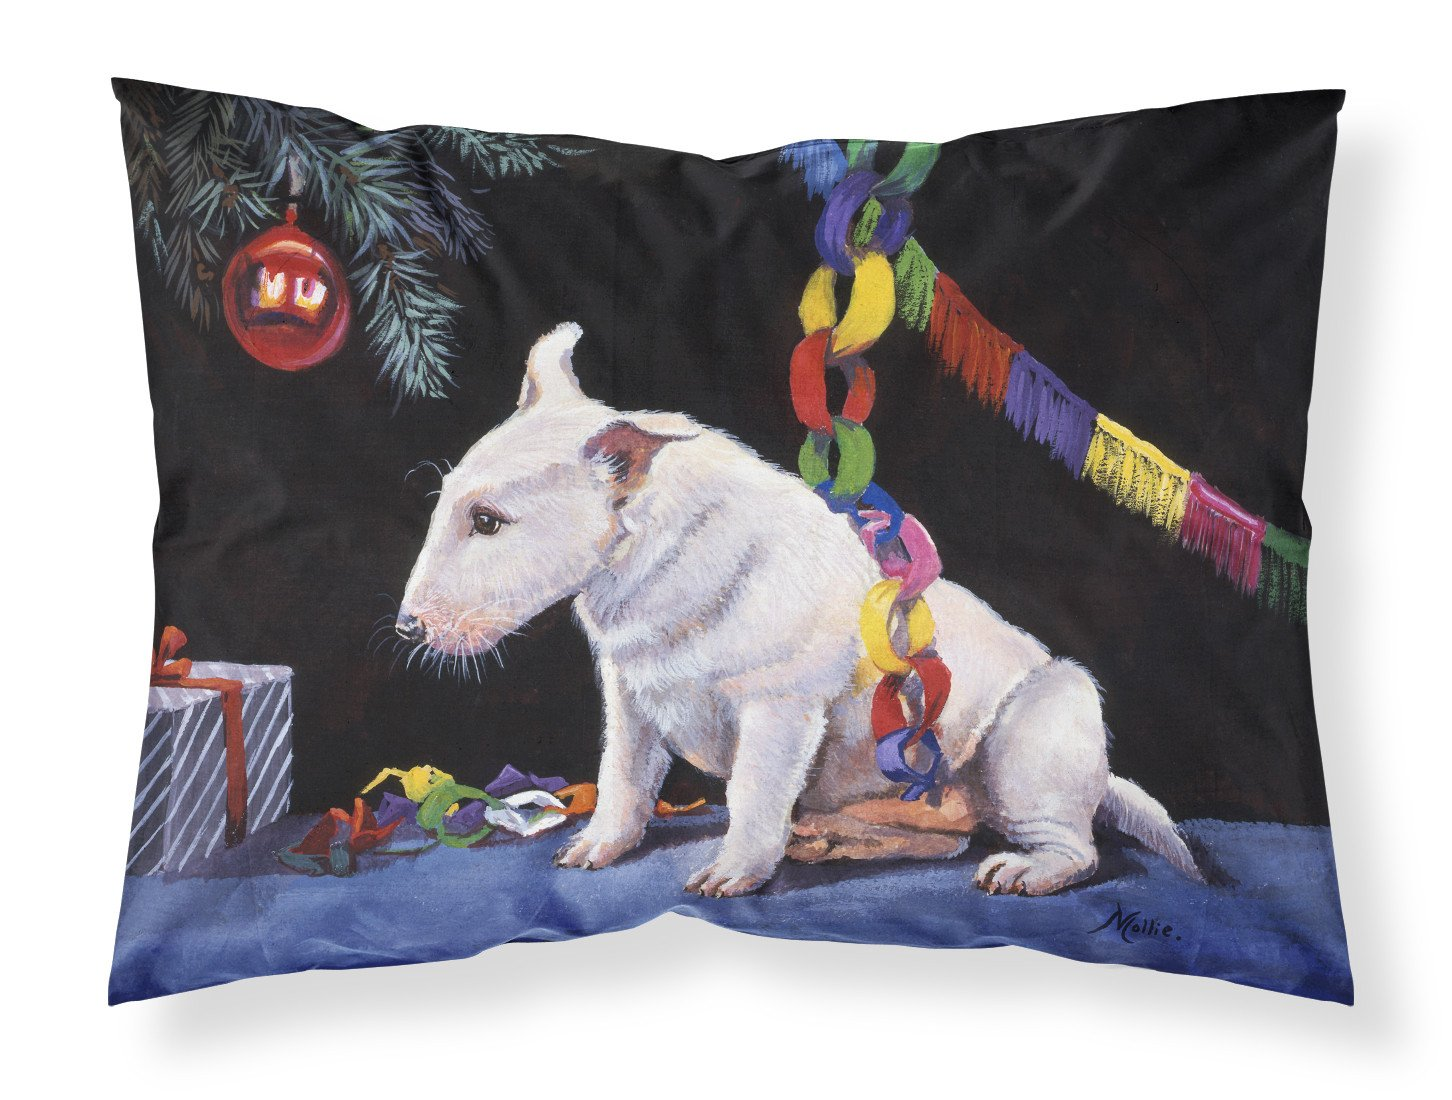 Bull Terrier under the Christmas Tree Fabric Standard Pillowcase FMF0012PILLOWCASE by Caroline's Treasures